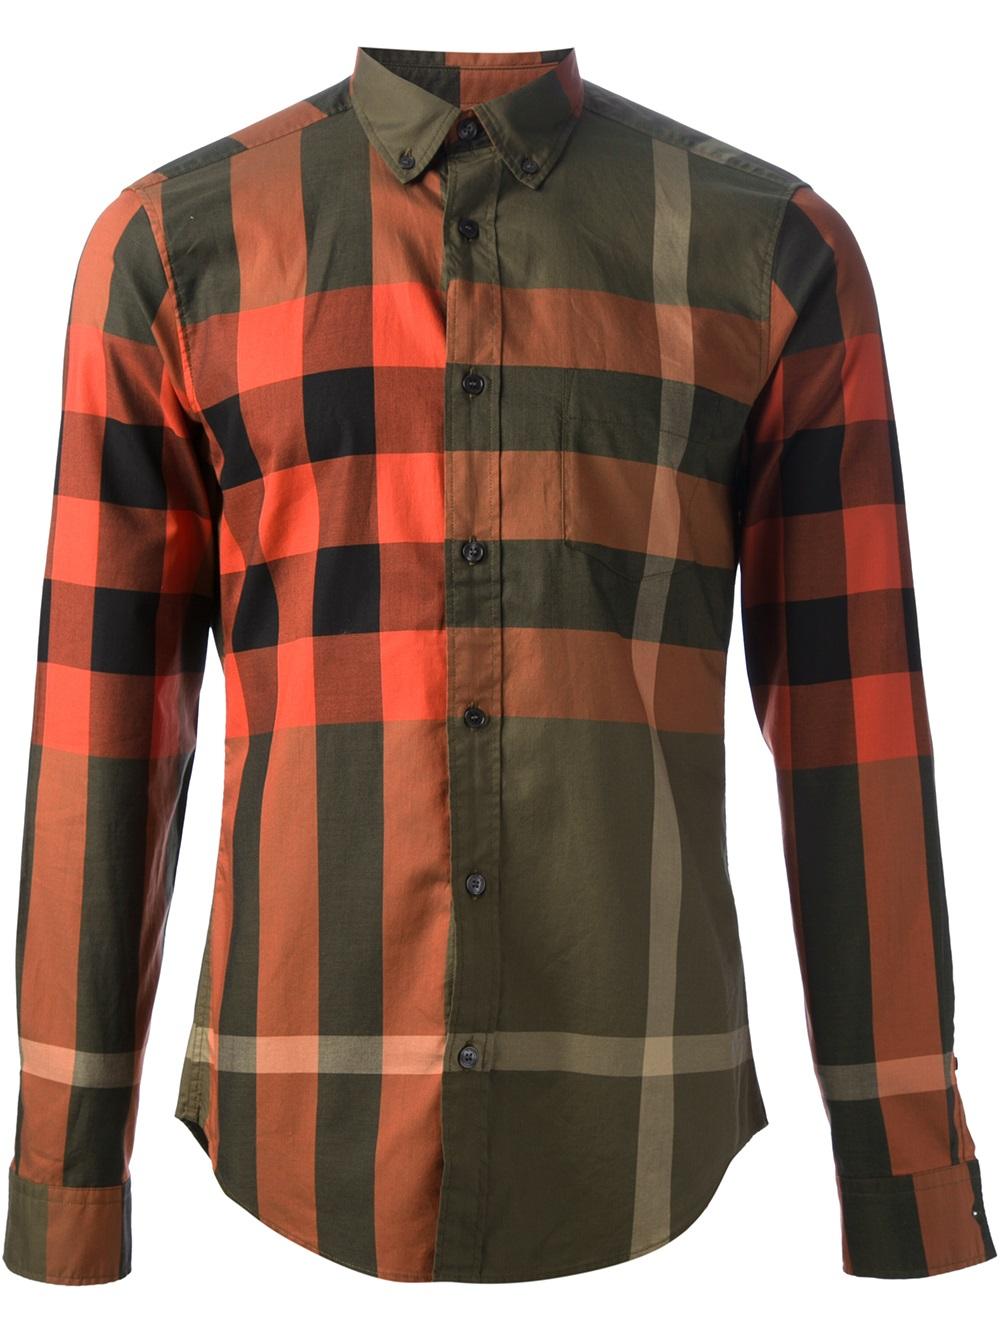 Lyst burberry brit checked shirt in green for men for Burberry brit checked shirt